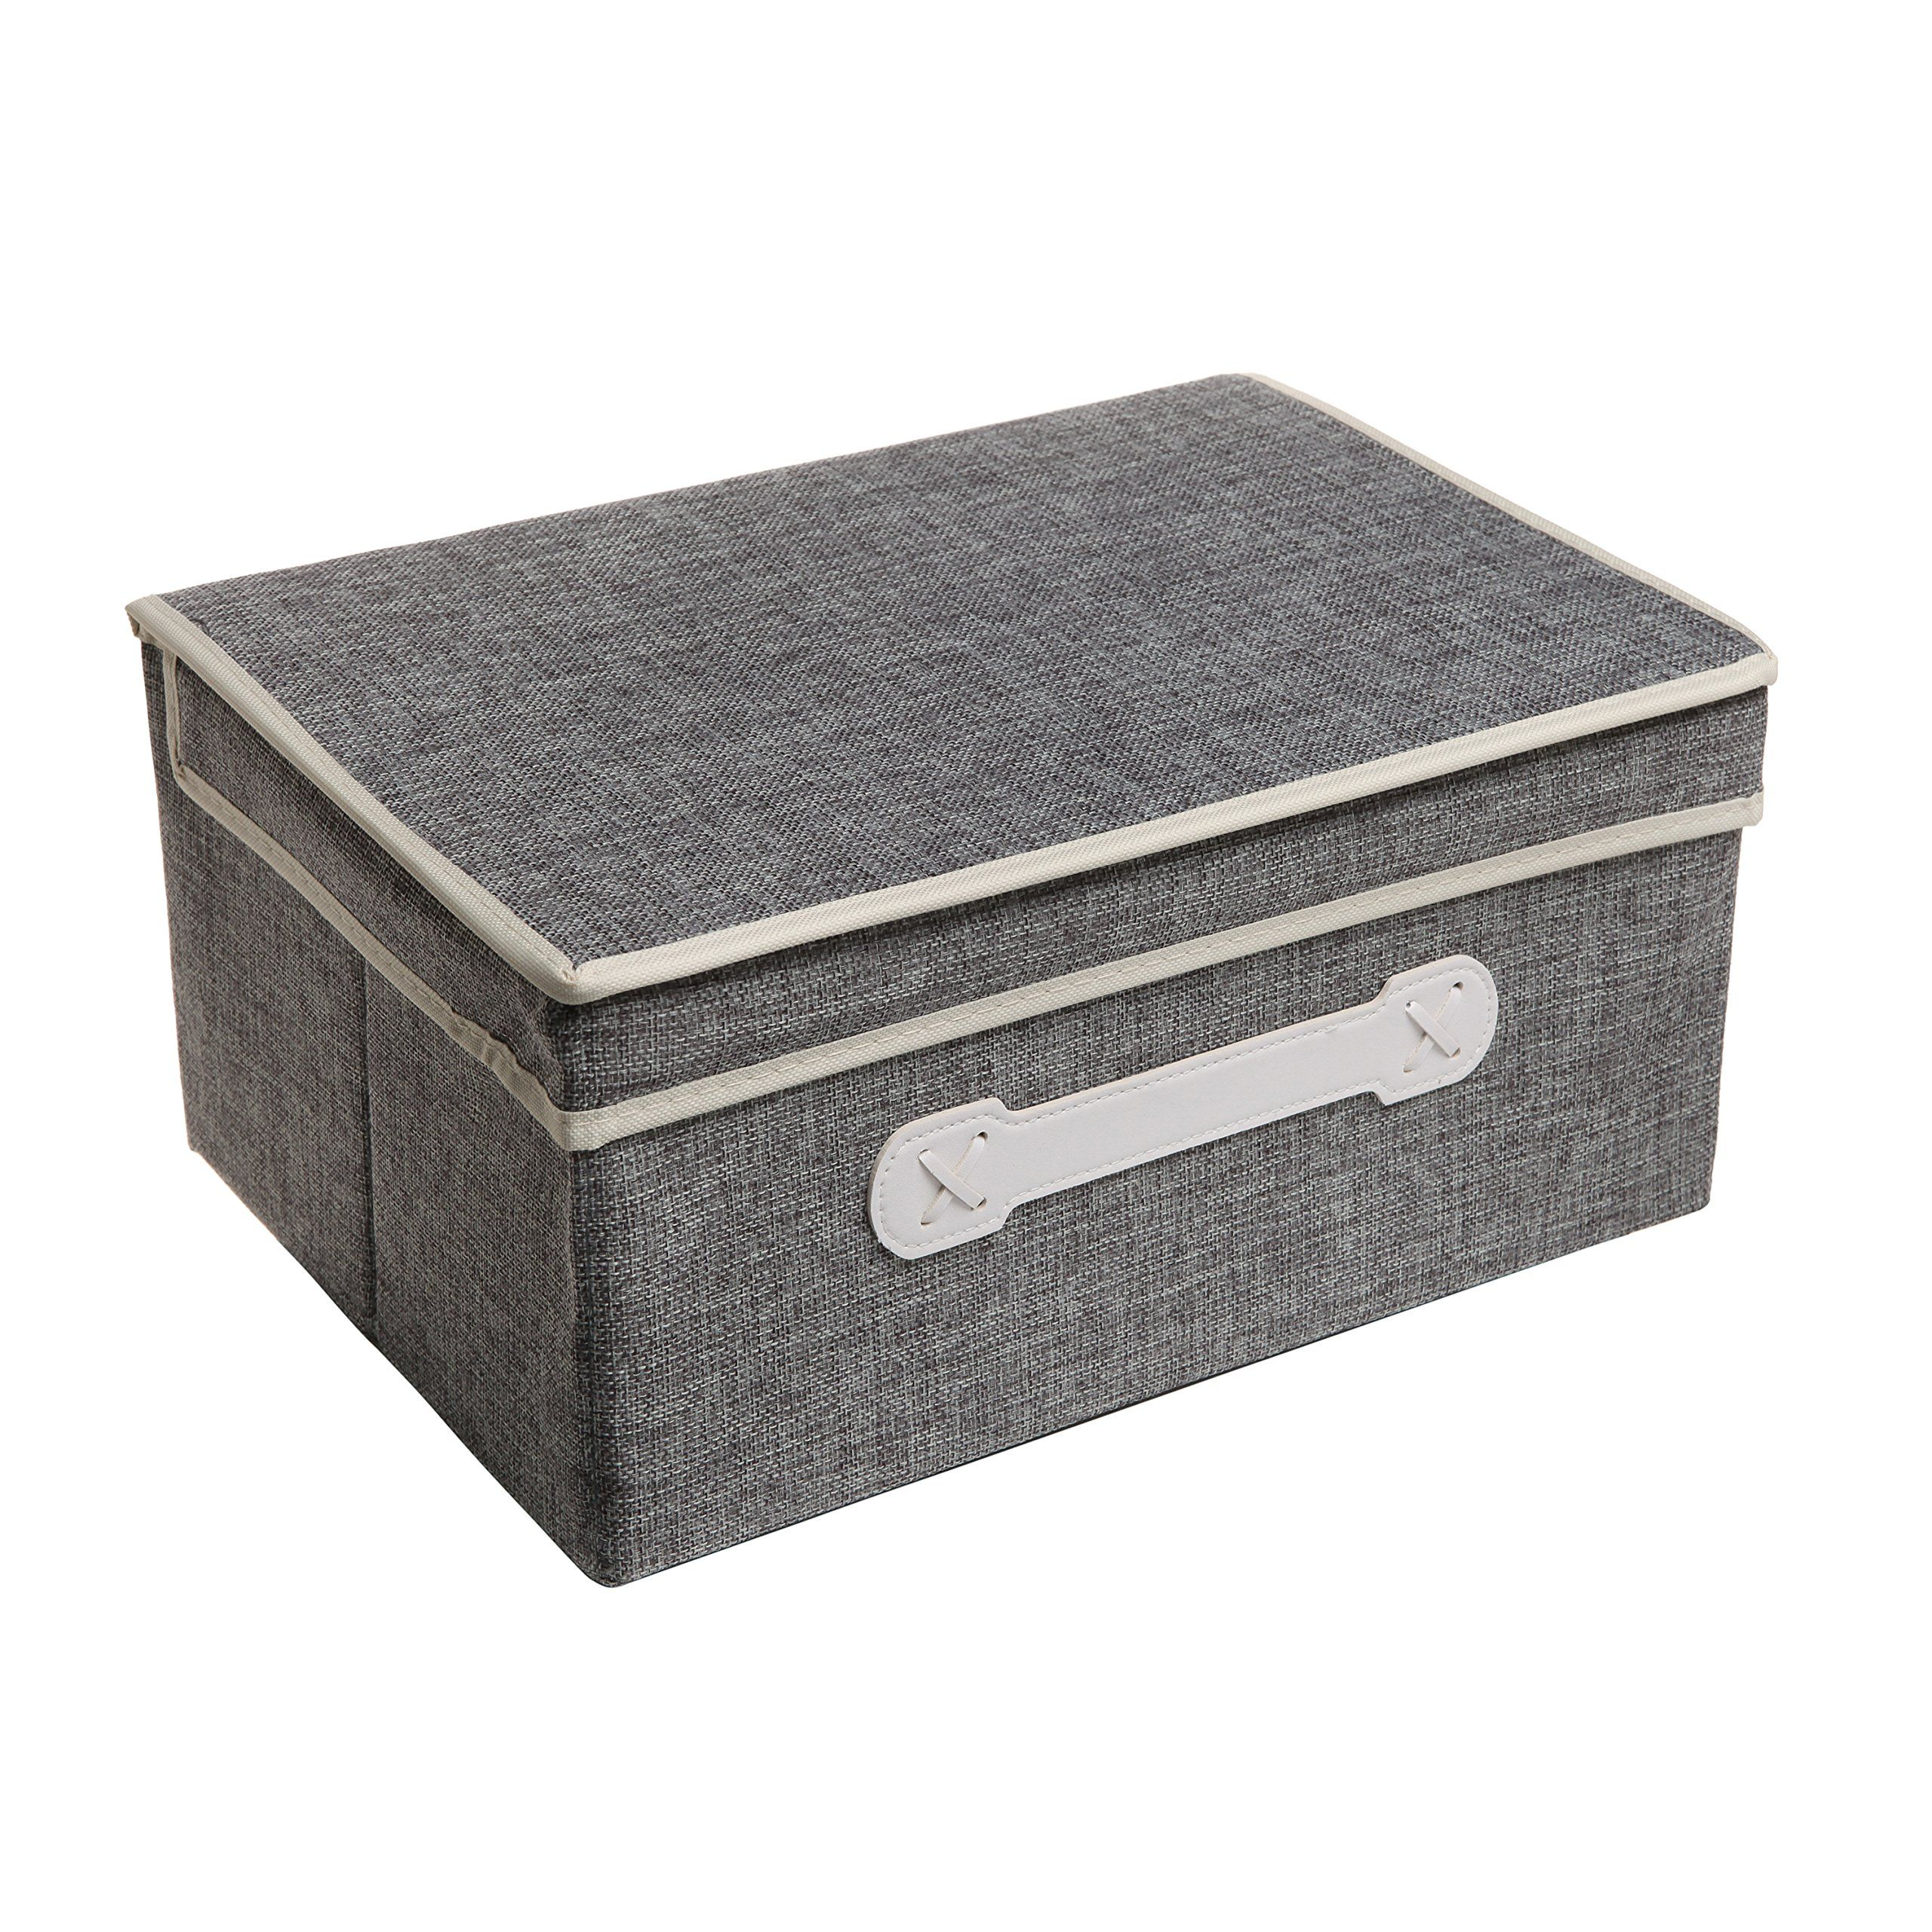 Decorative Lidded Storage Boxes Amazon  Decorative Gray Woven Collapsible Fabric Lidded Shelf